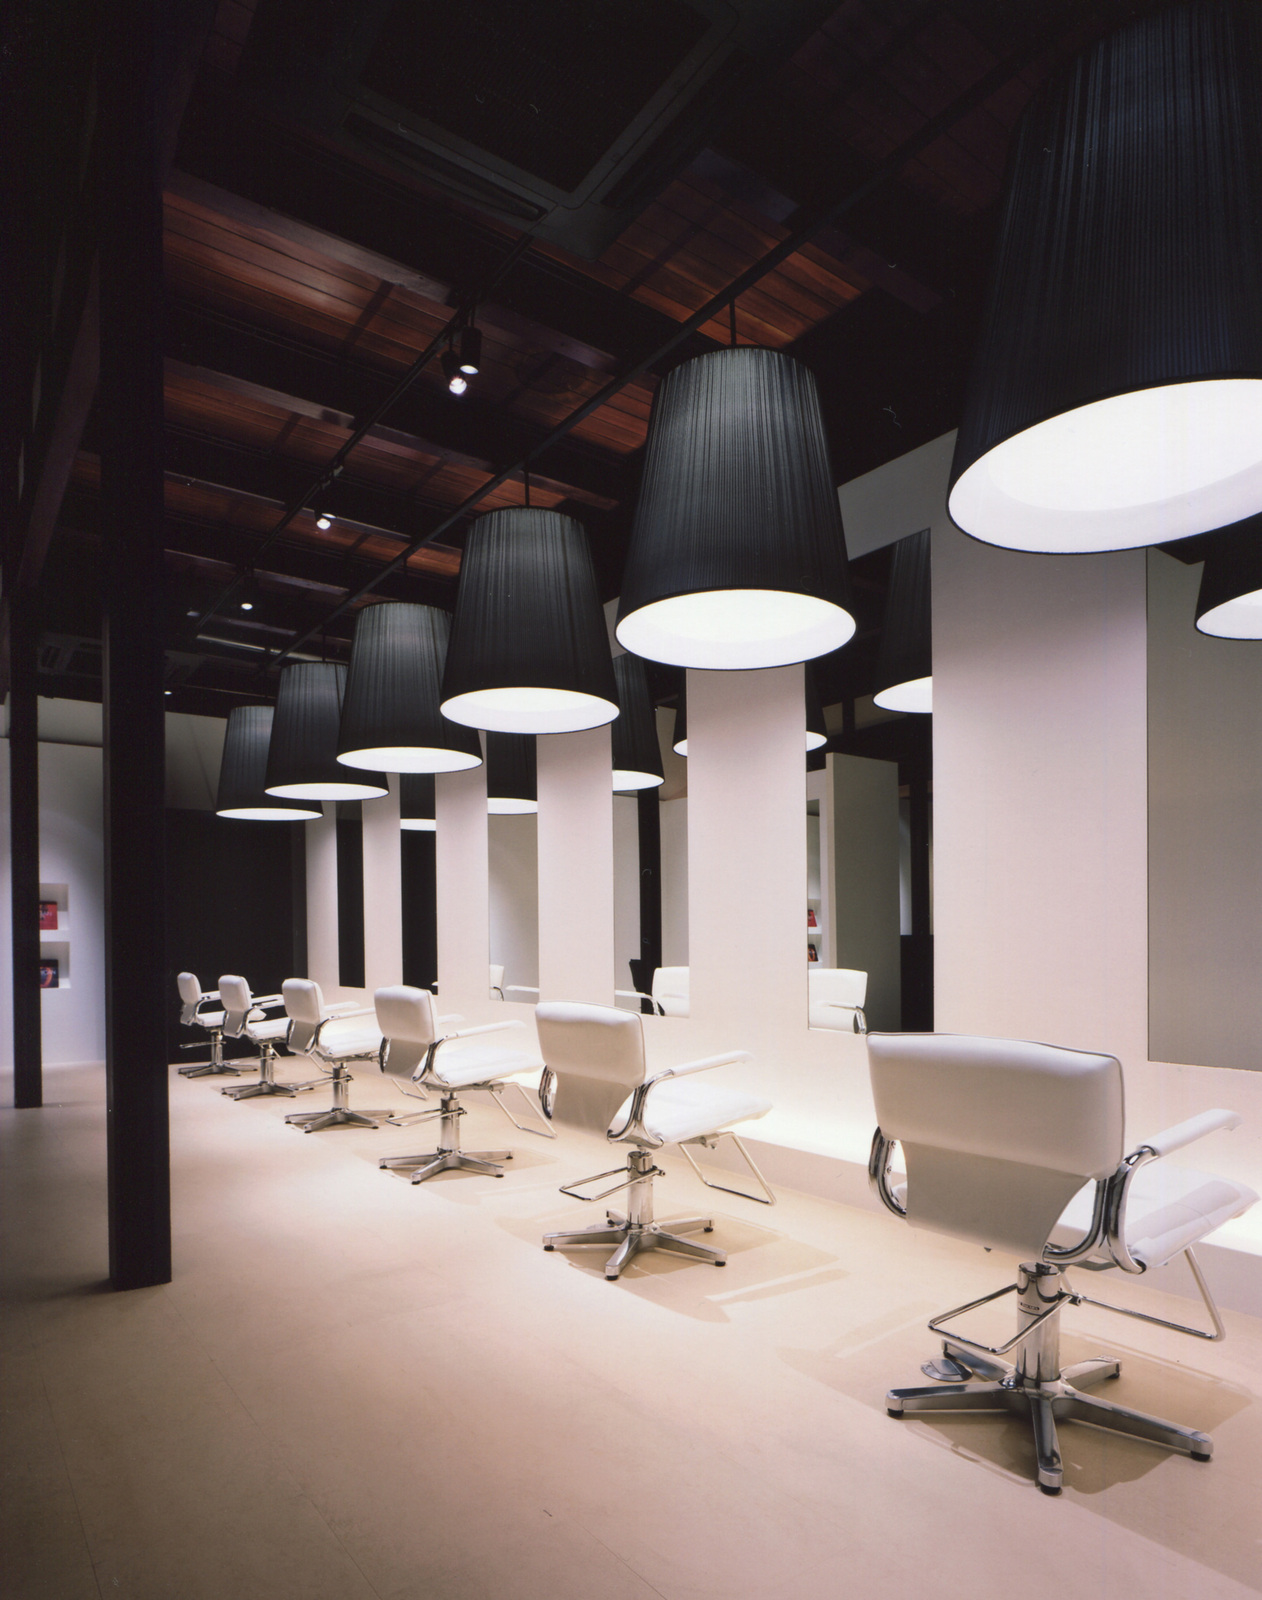 Mifune design studio english shop design for A beautiful you salon